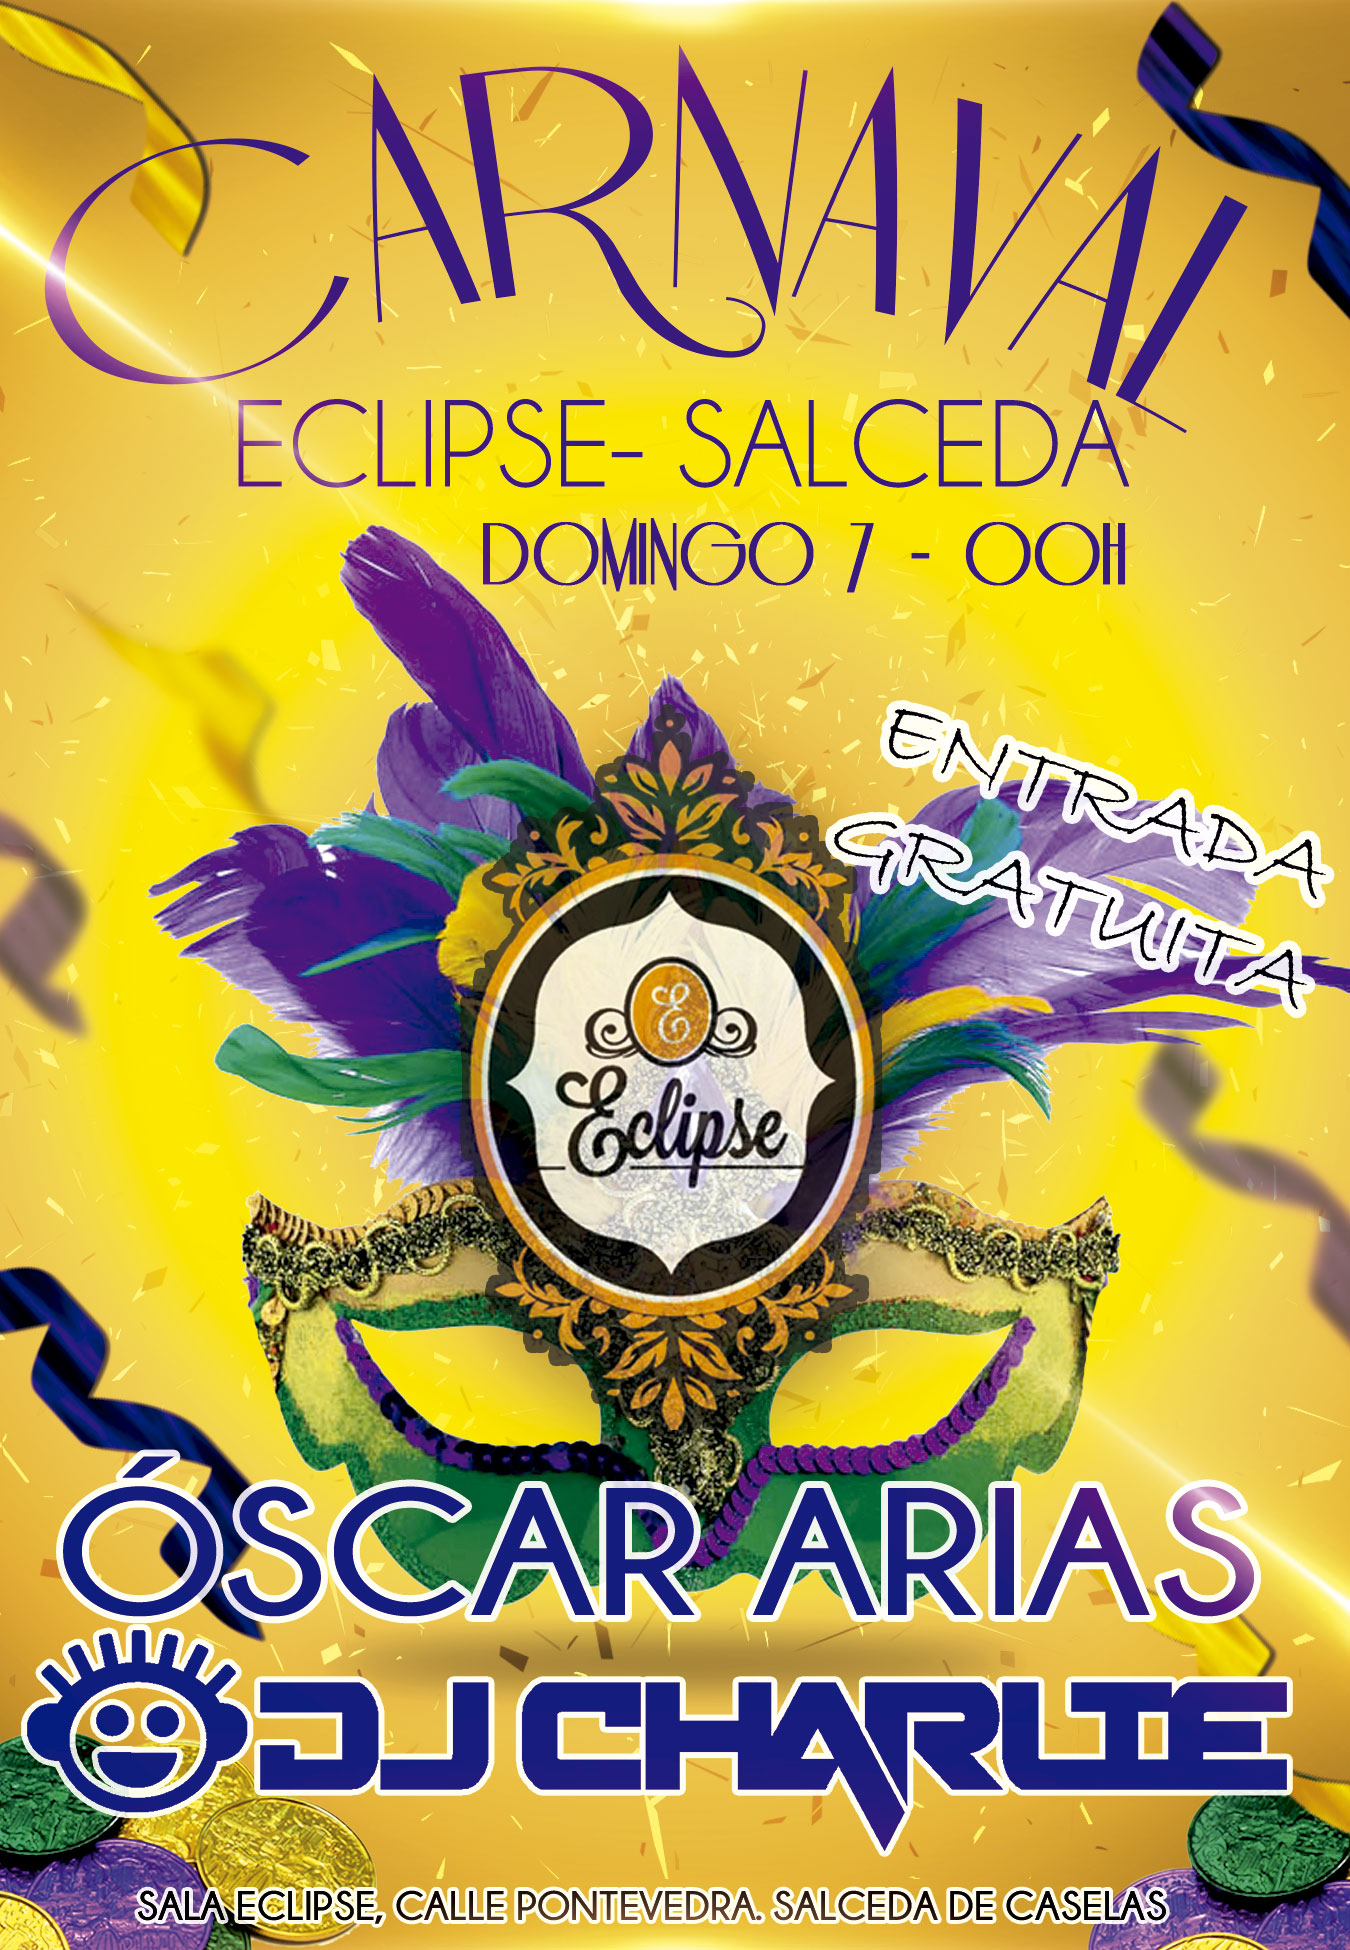 07-02-2016-Eclipse-Carnaval